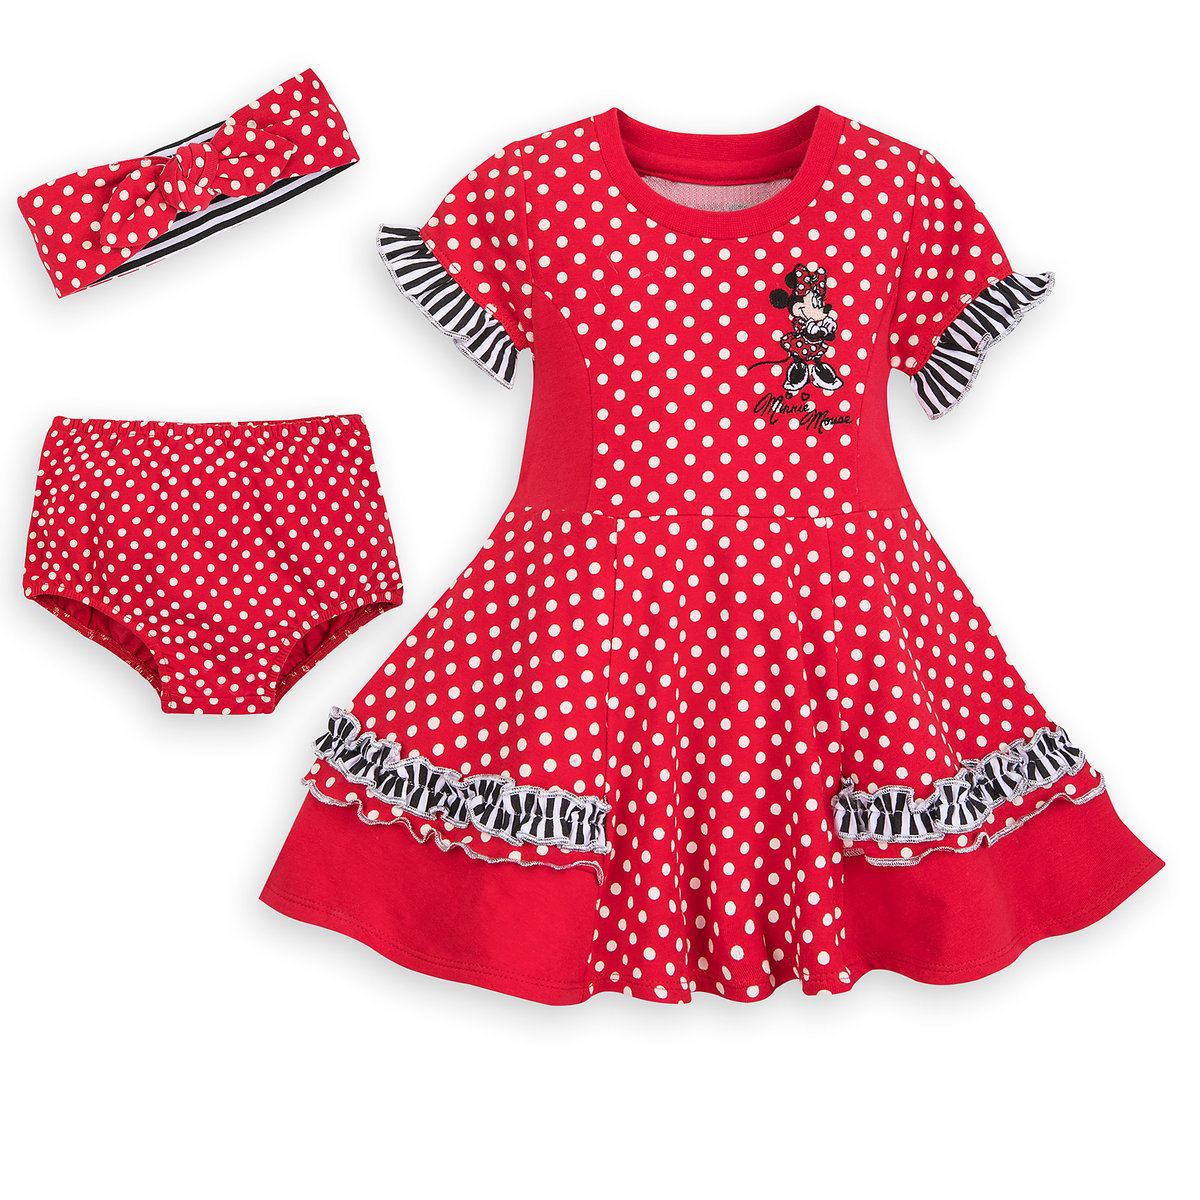 2a4f652878c Minnie Mouse Dress Set for Baby - Walt Disney World